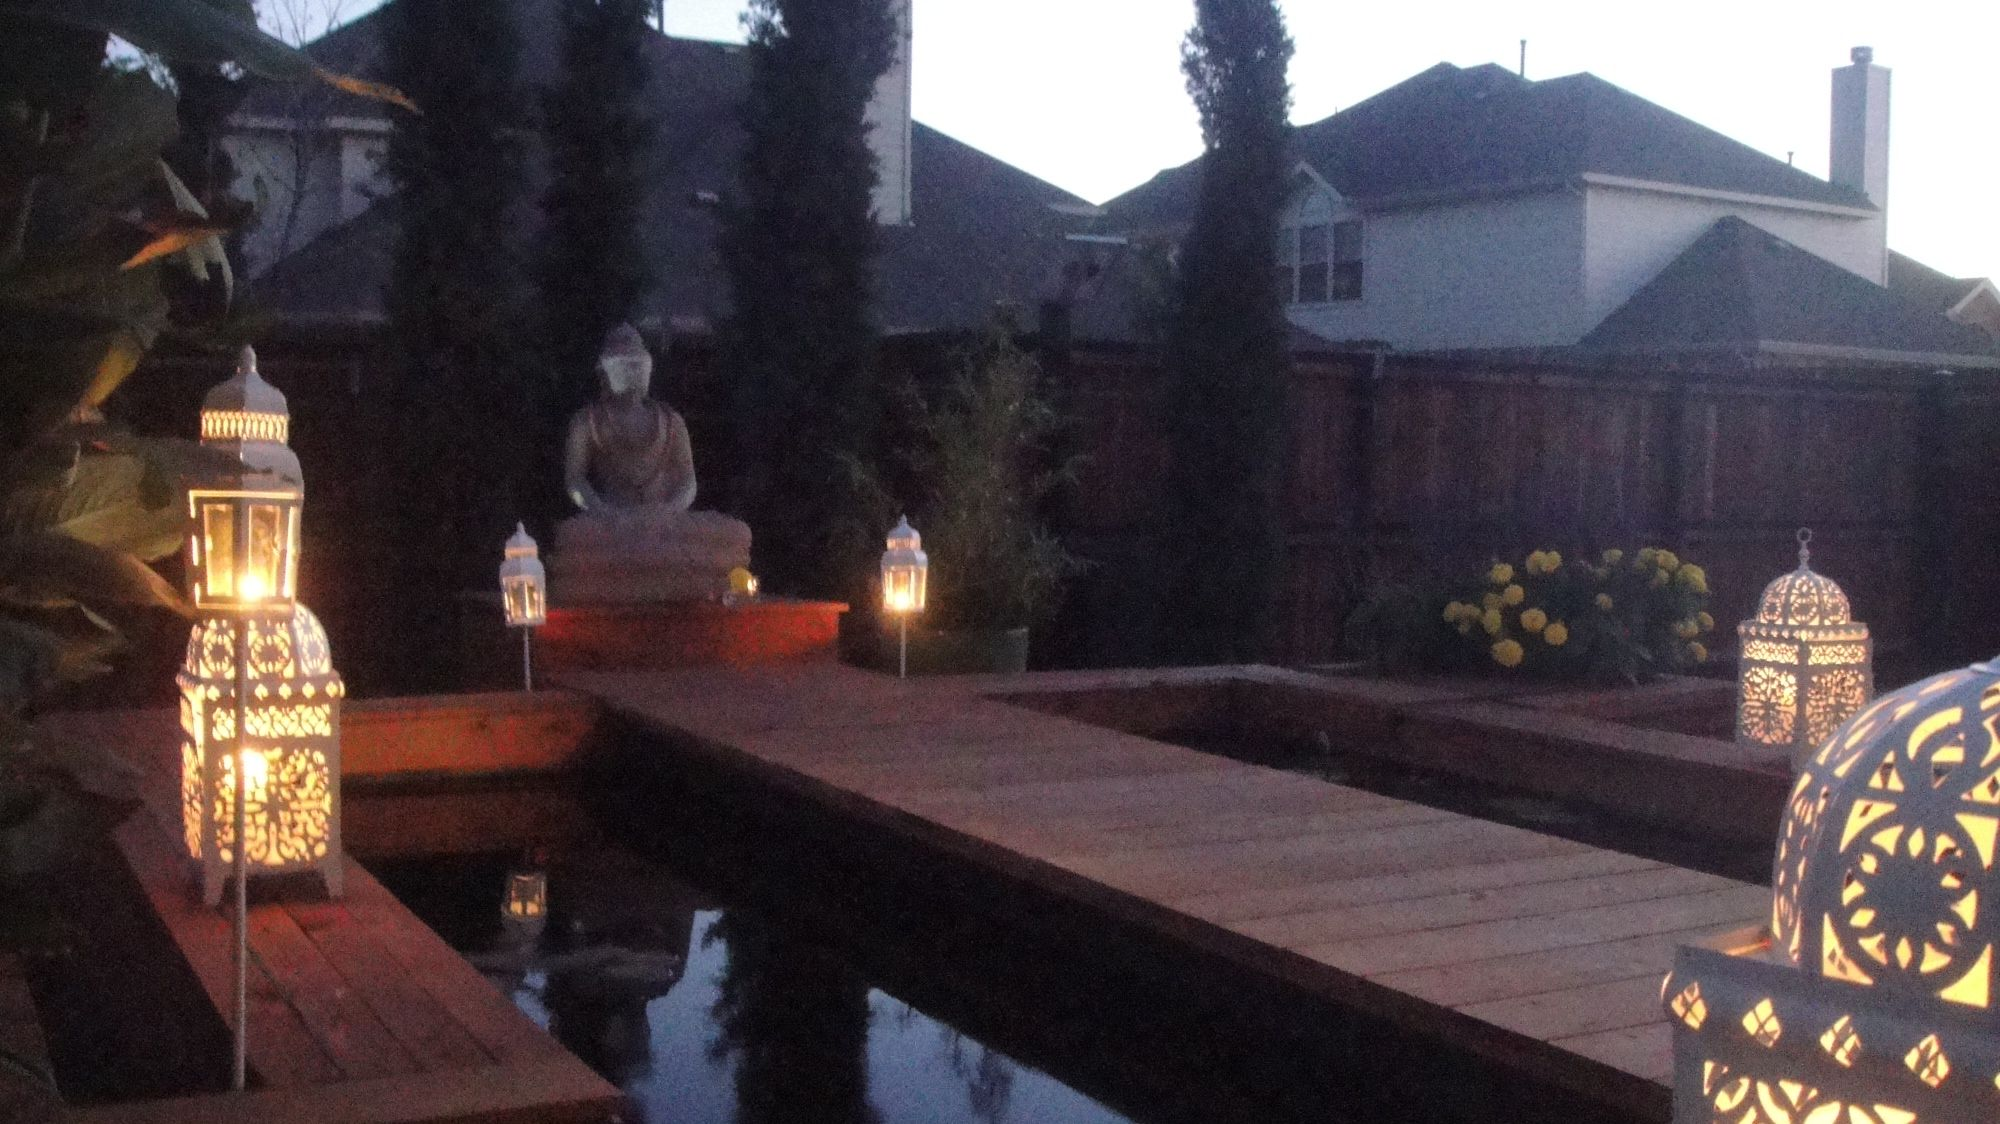 A contemporary Asian inspired koi pond with Buddha statue